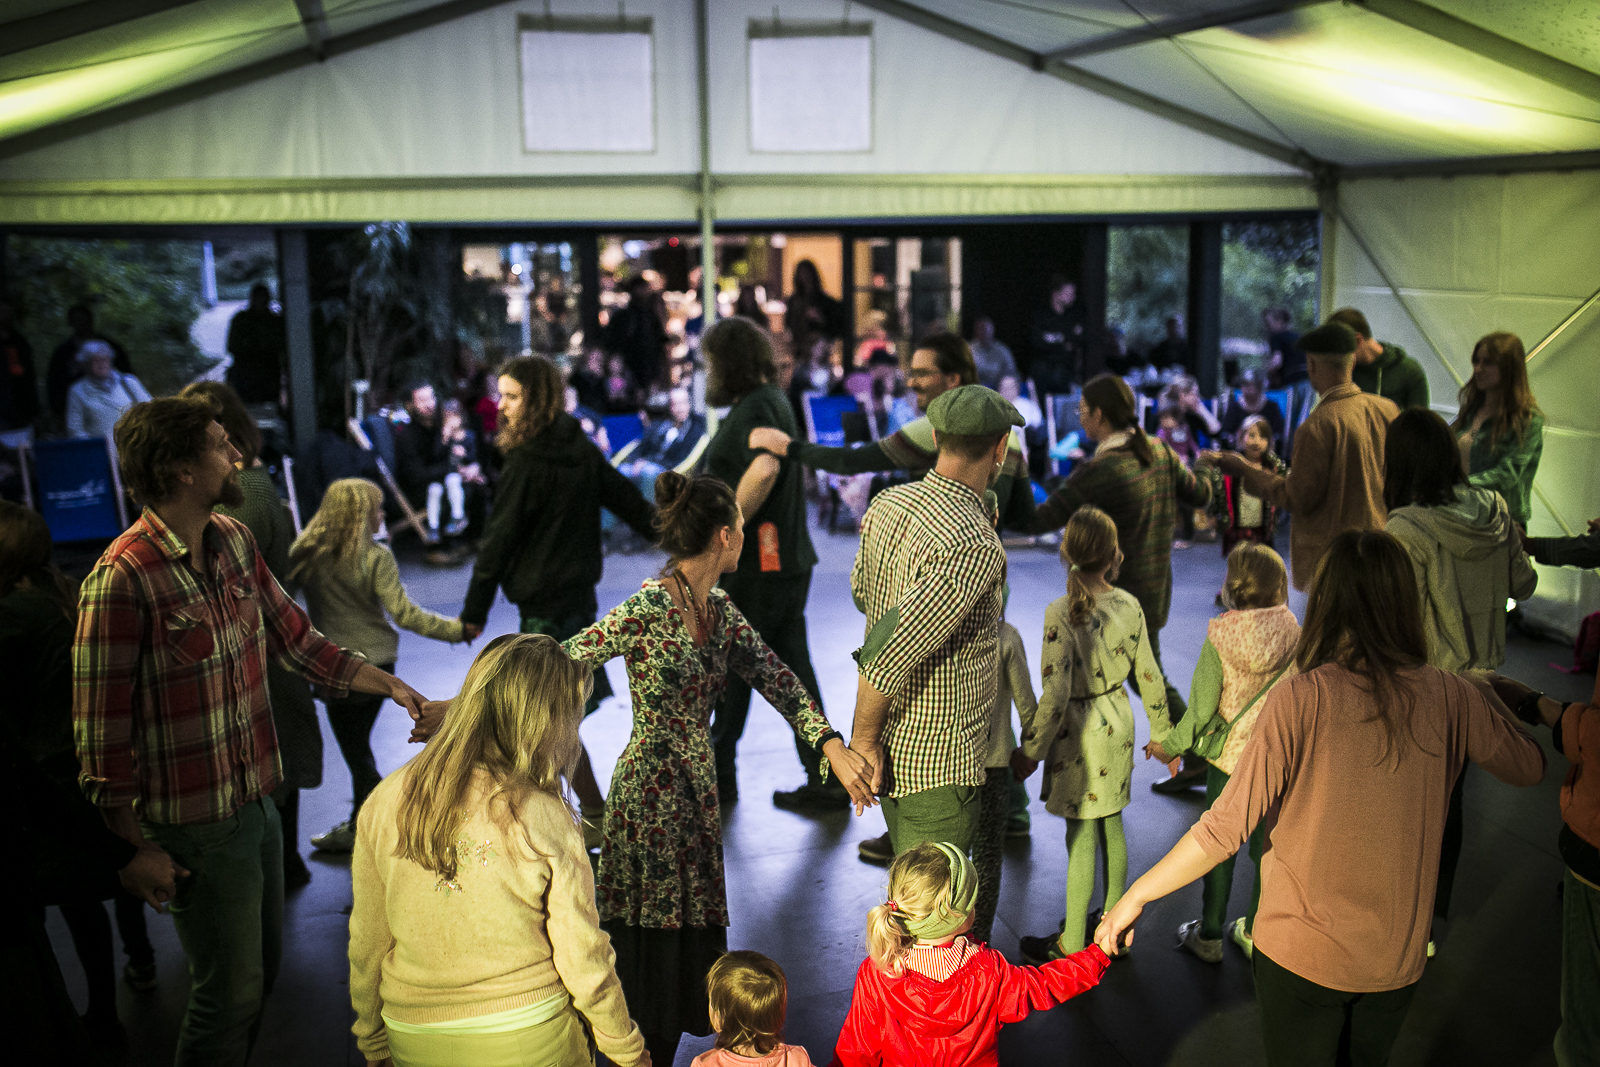 A photograph showing people dancing under a tent. Participants, including children, dance in a circle holding hands; in the background, there is a pavilion and spectators sitting on deck-chairs